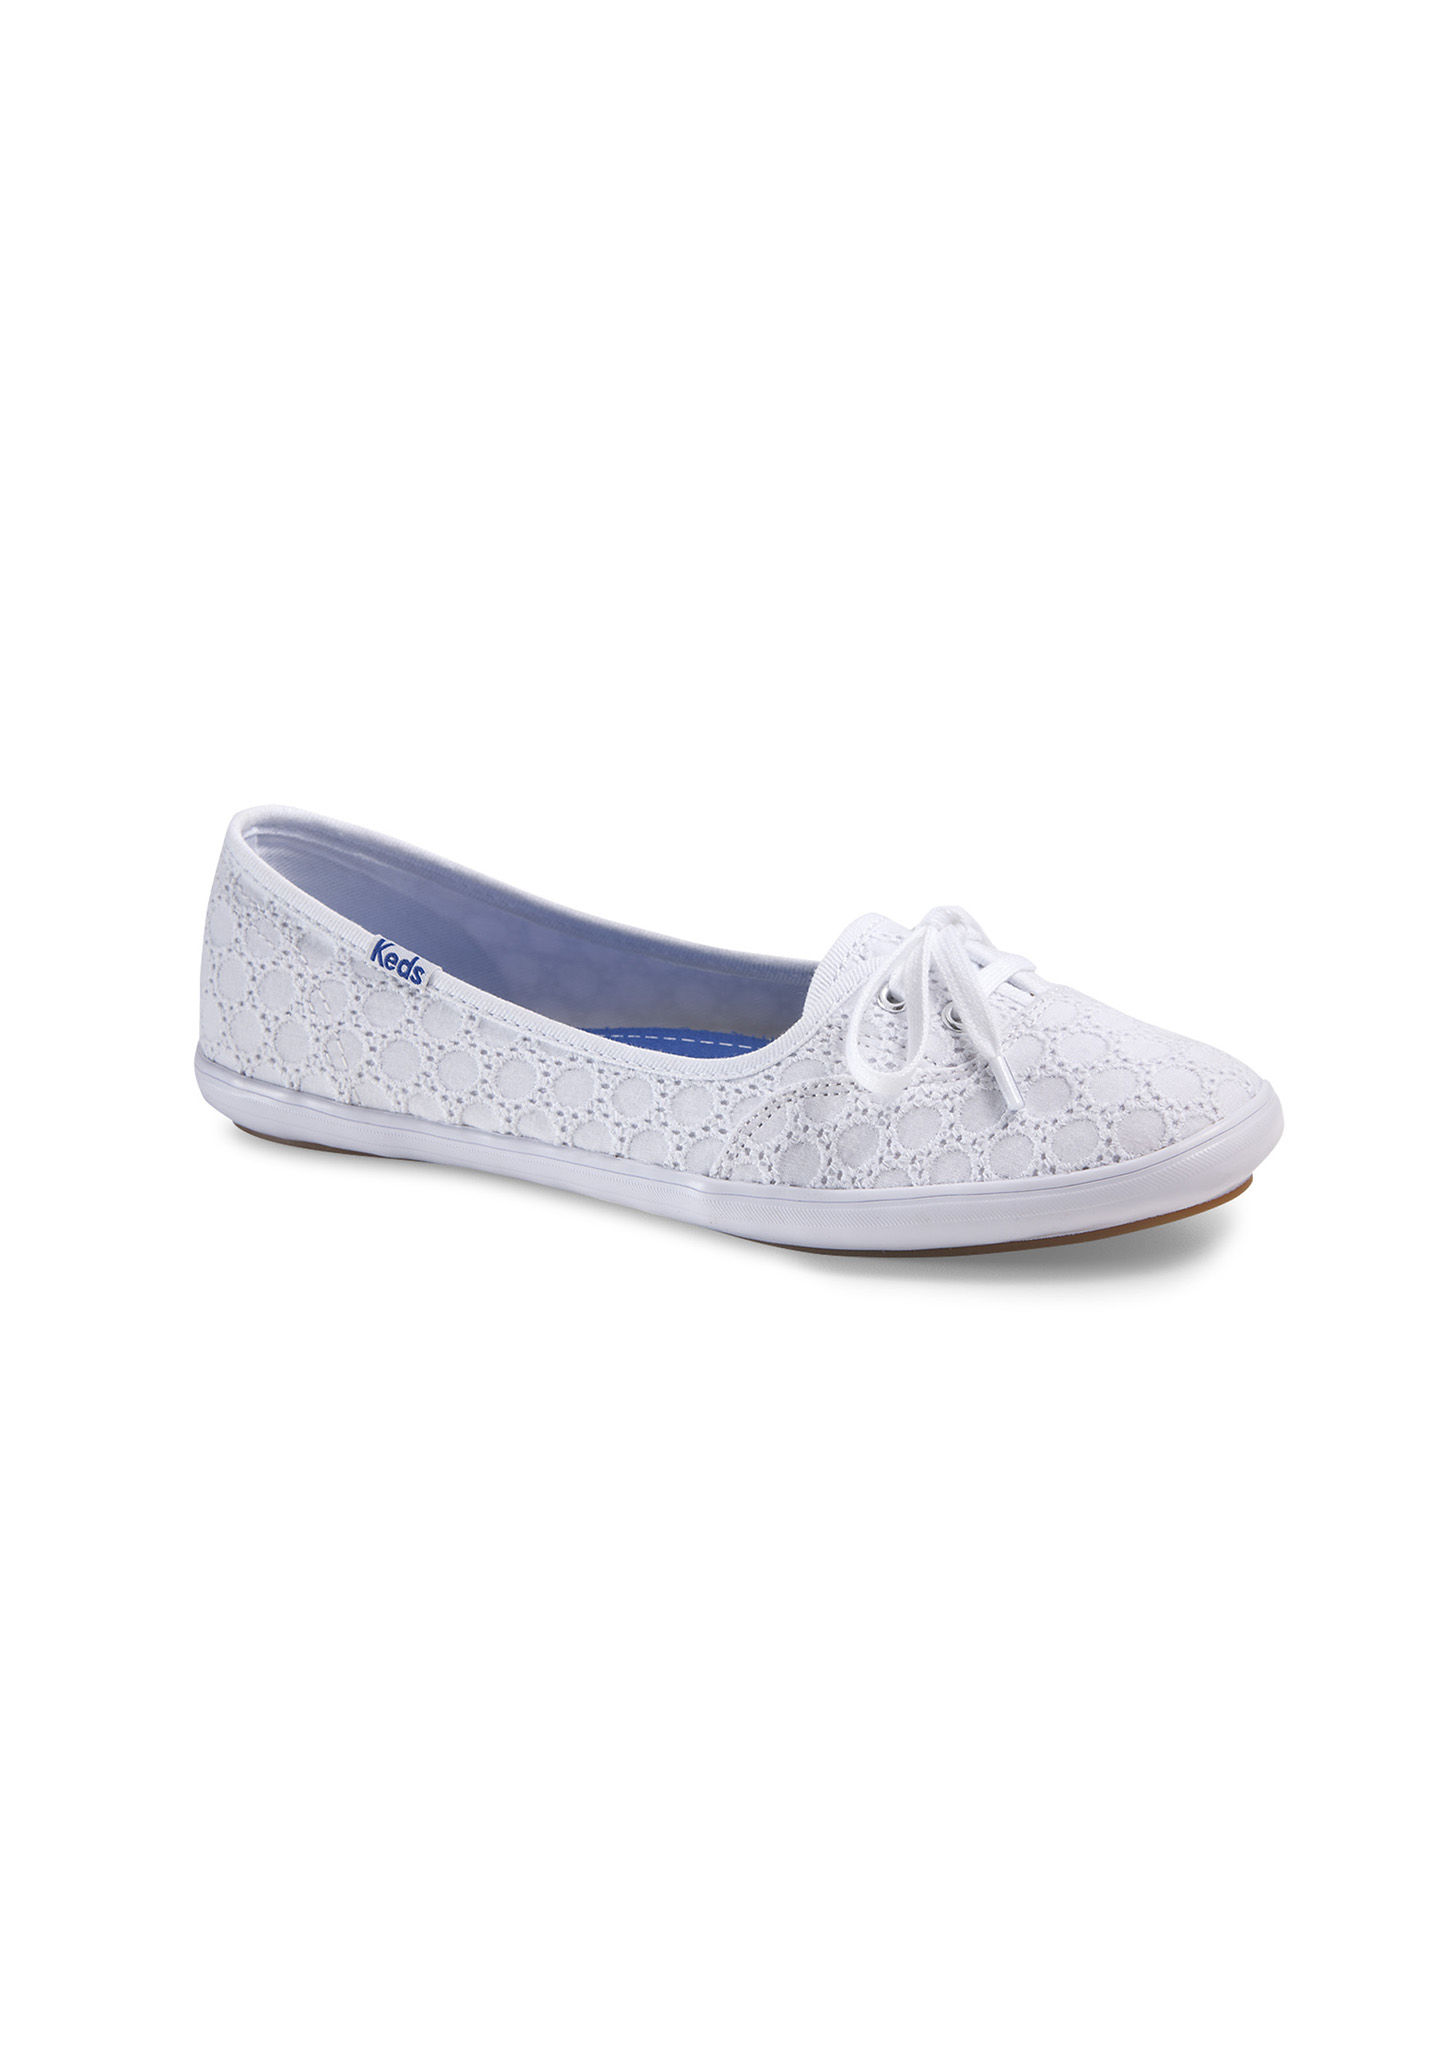 Sweetheart Keds Teacup Women's Boat Shoes White